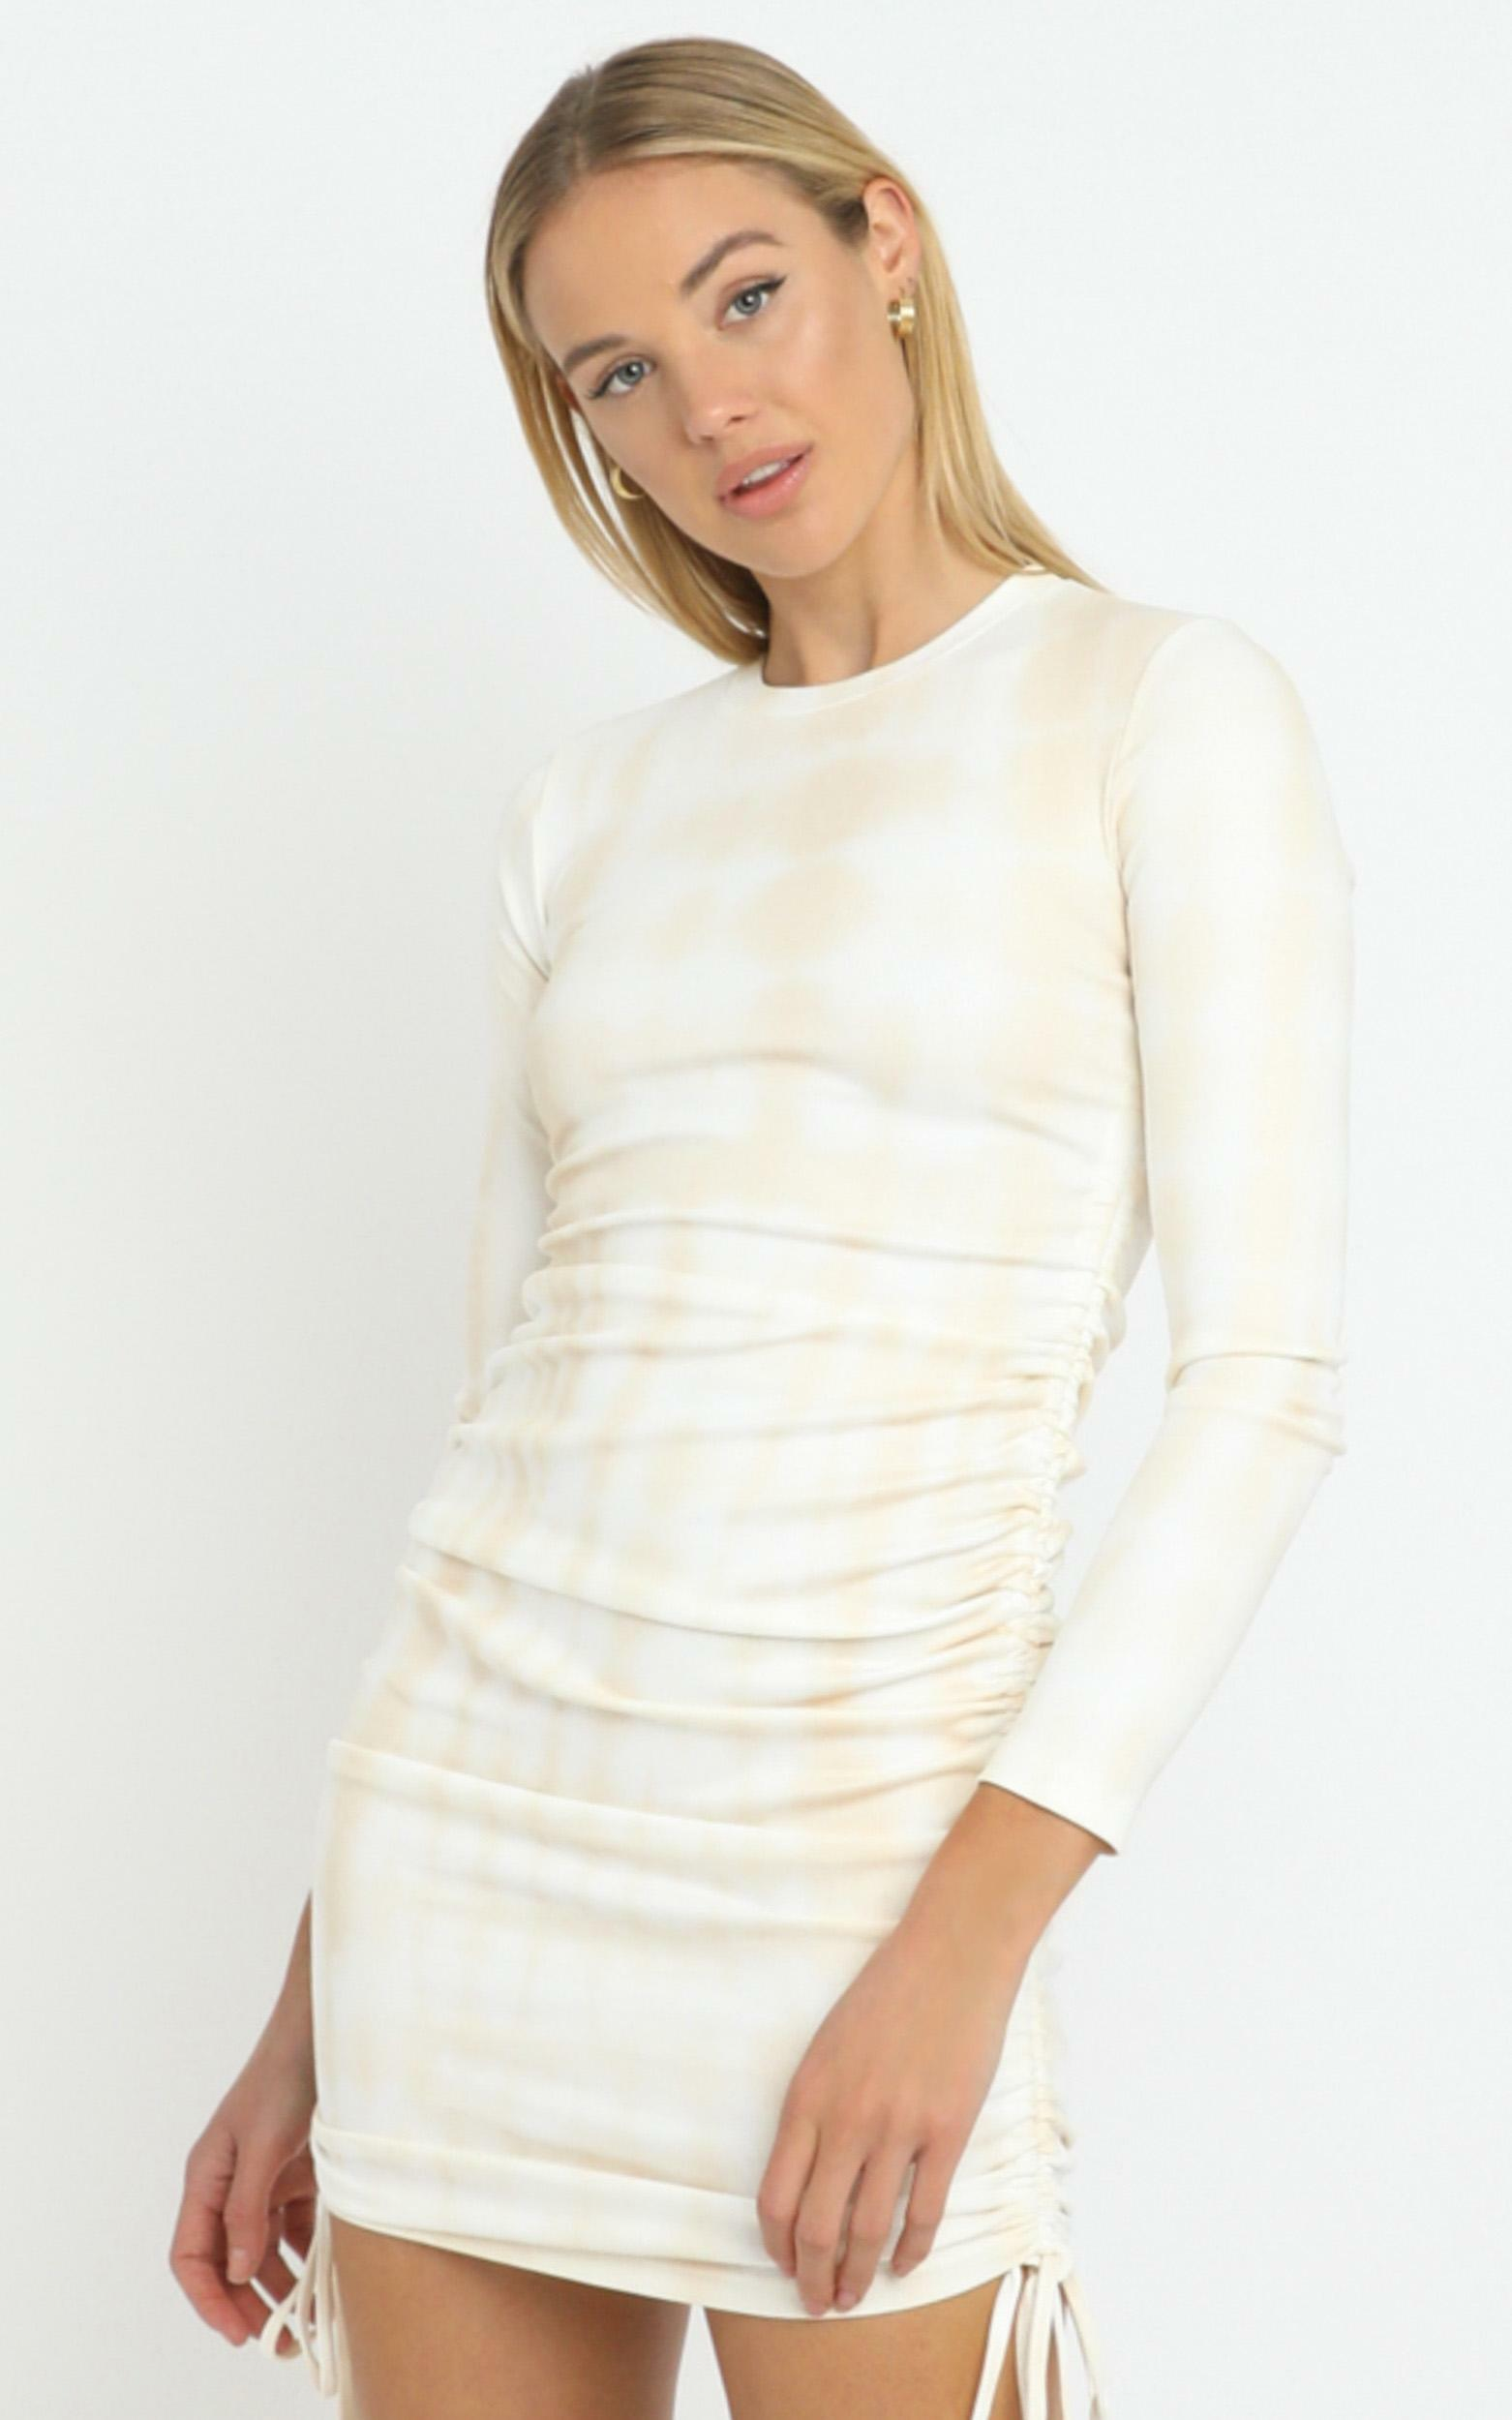 Lioness - Military Minds Long Sleeve Dress in Ecru Tie Dye - 12 (L), Cream, hi-res image number null